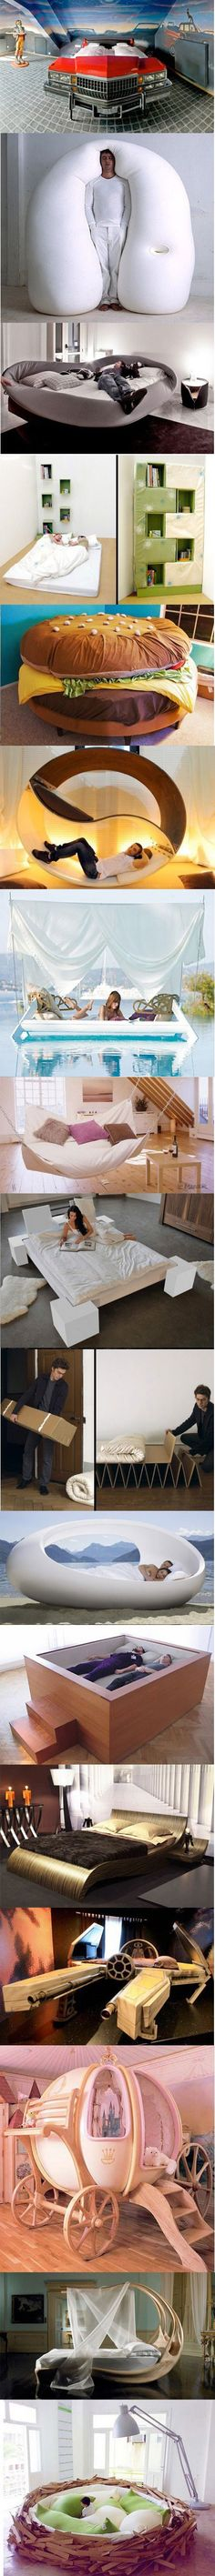 Unique Bed Designs. You can bet your first born child I will have all of these if I ever win the lottery lol